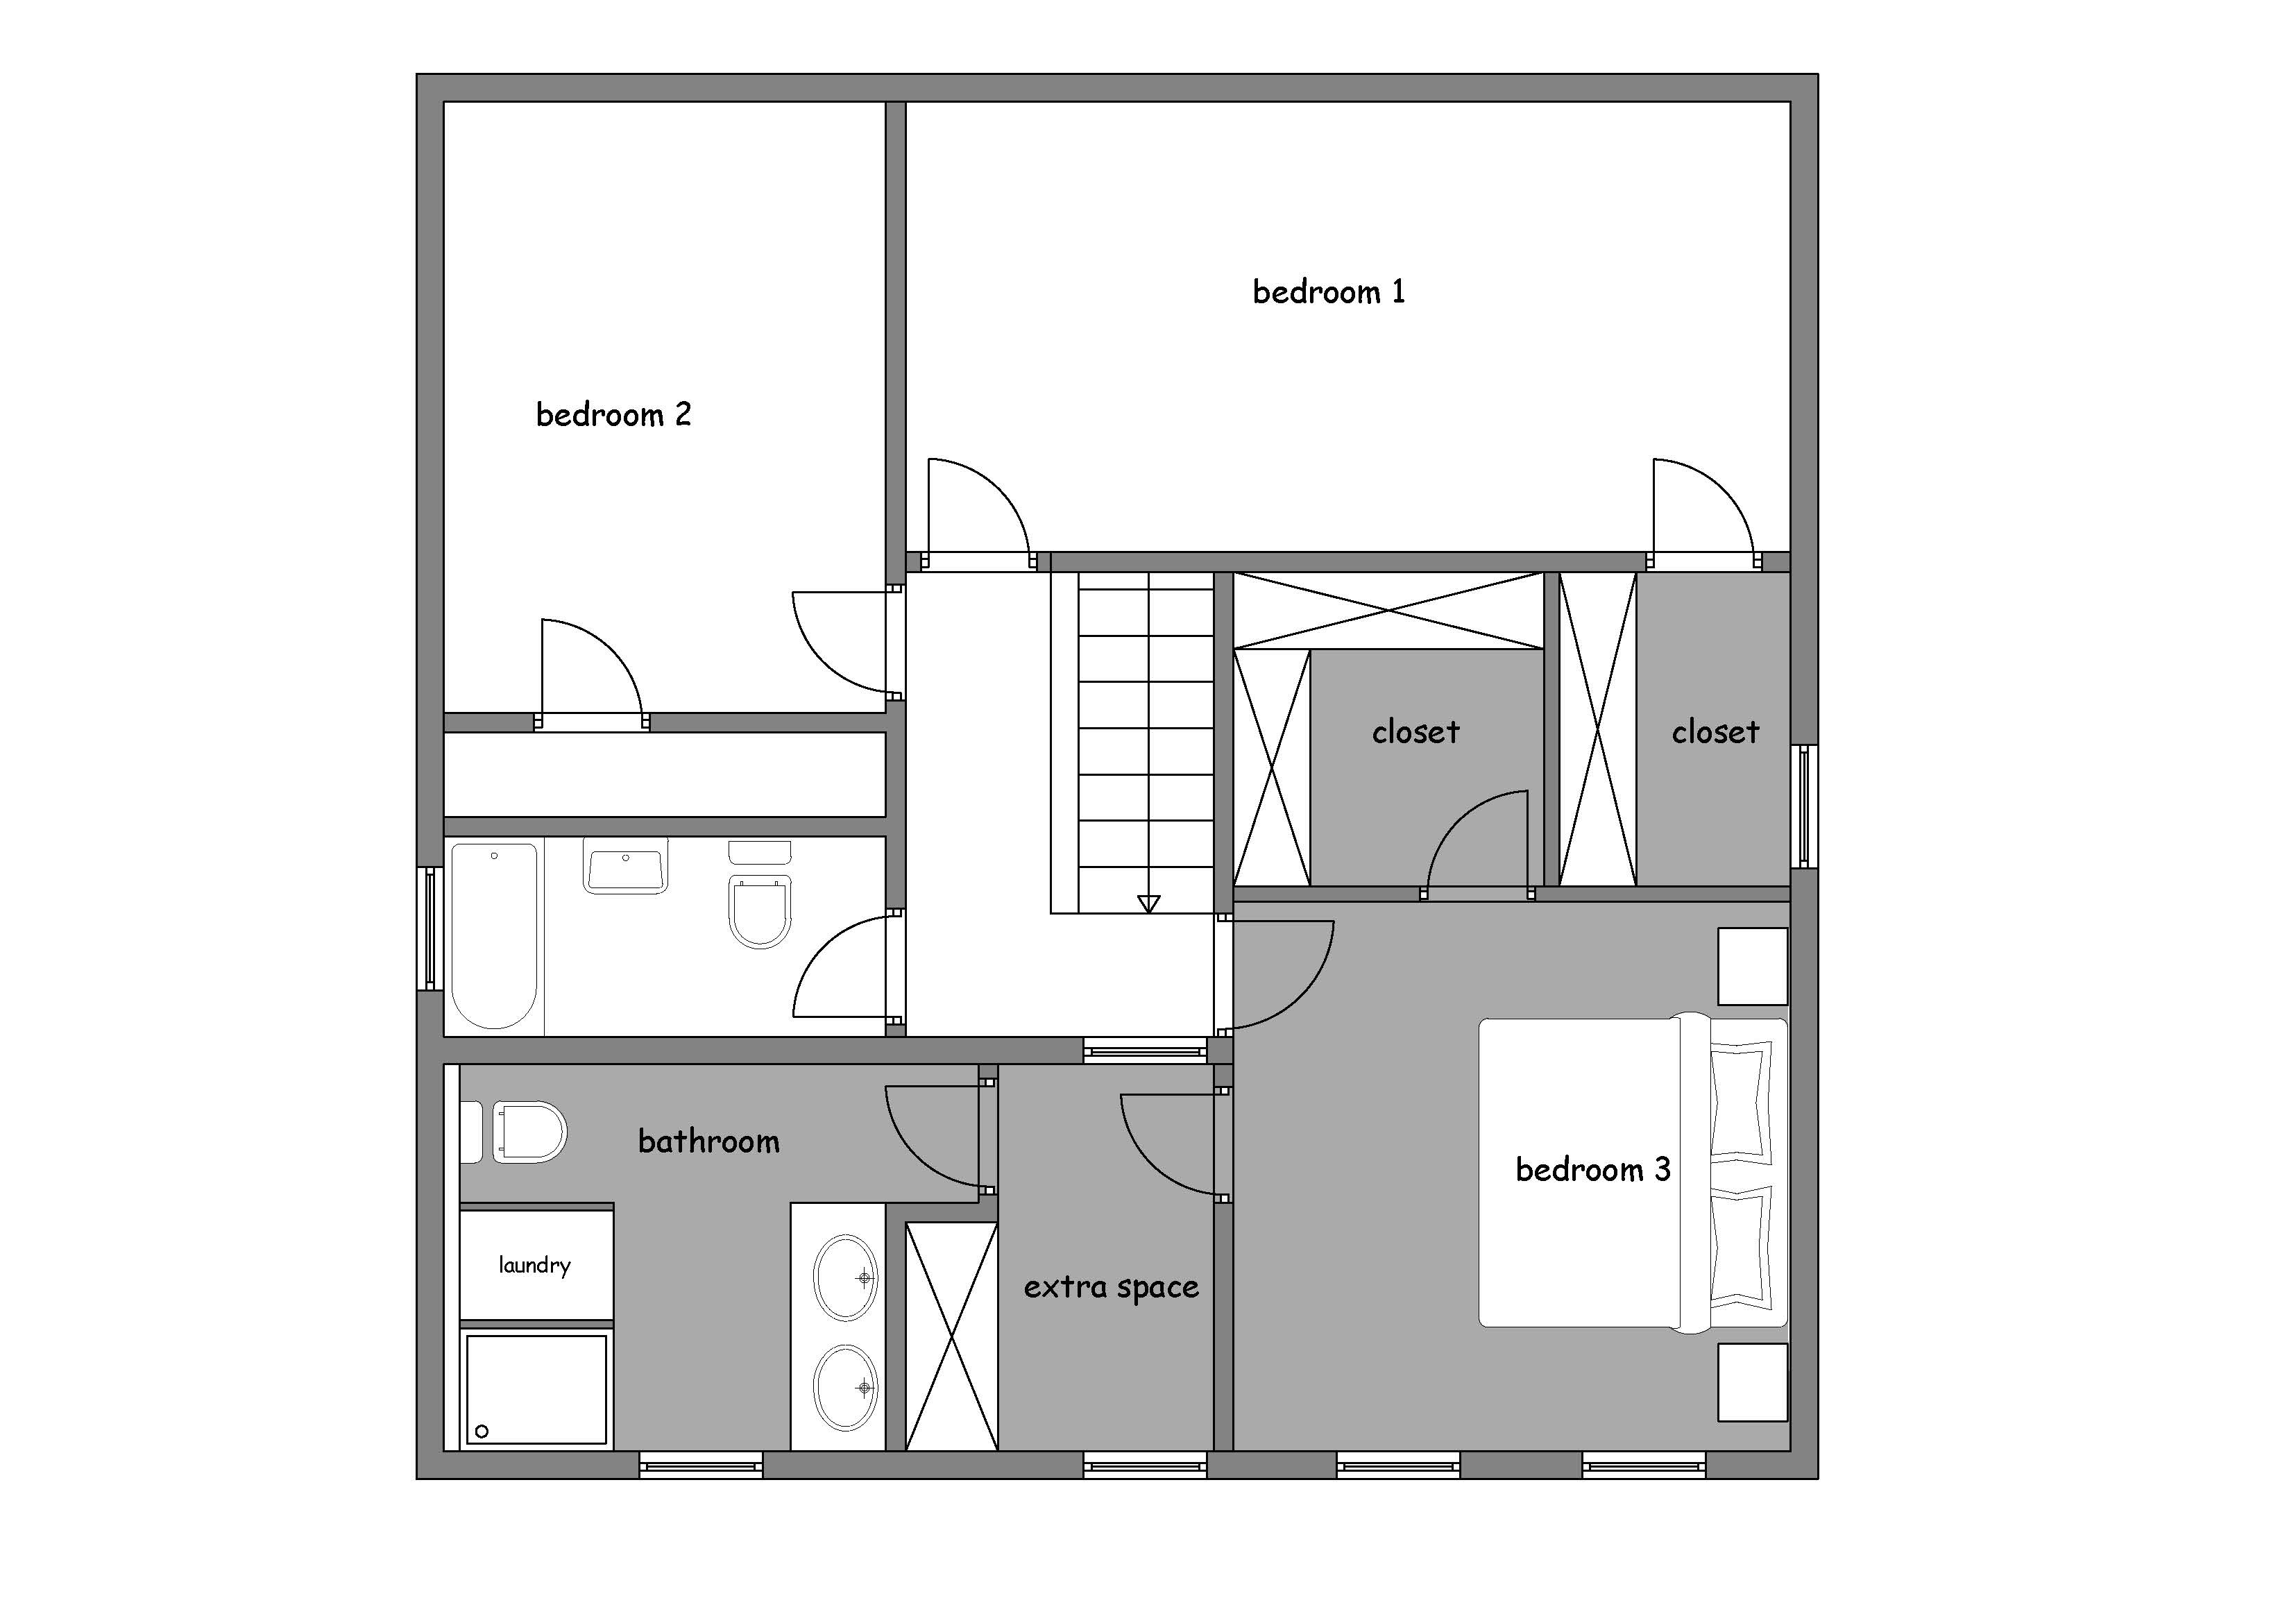 Master bedroom drawing - Smaklady Master Suite Addition Floor Plans United States Minnesota Minneapolis